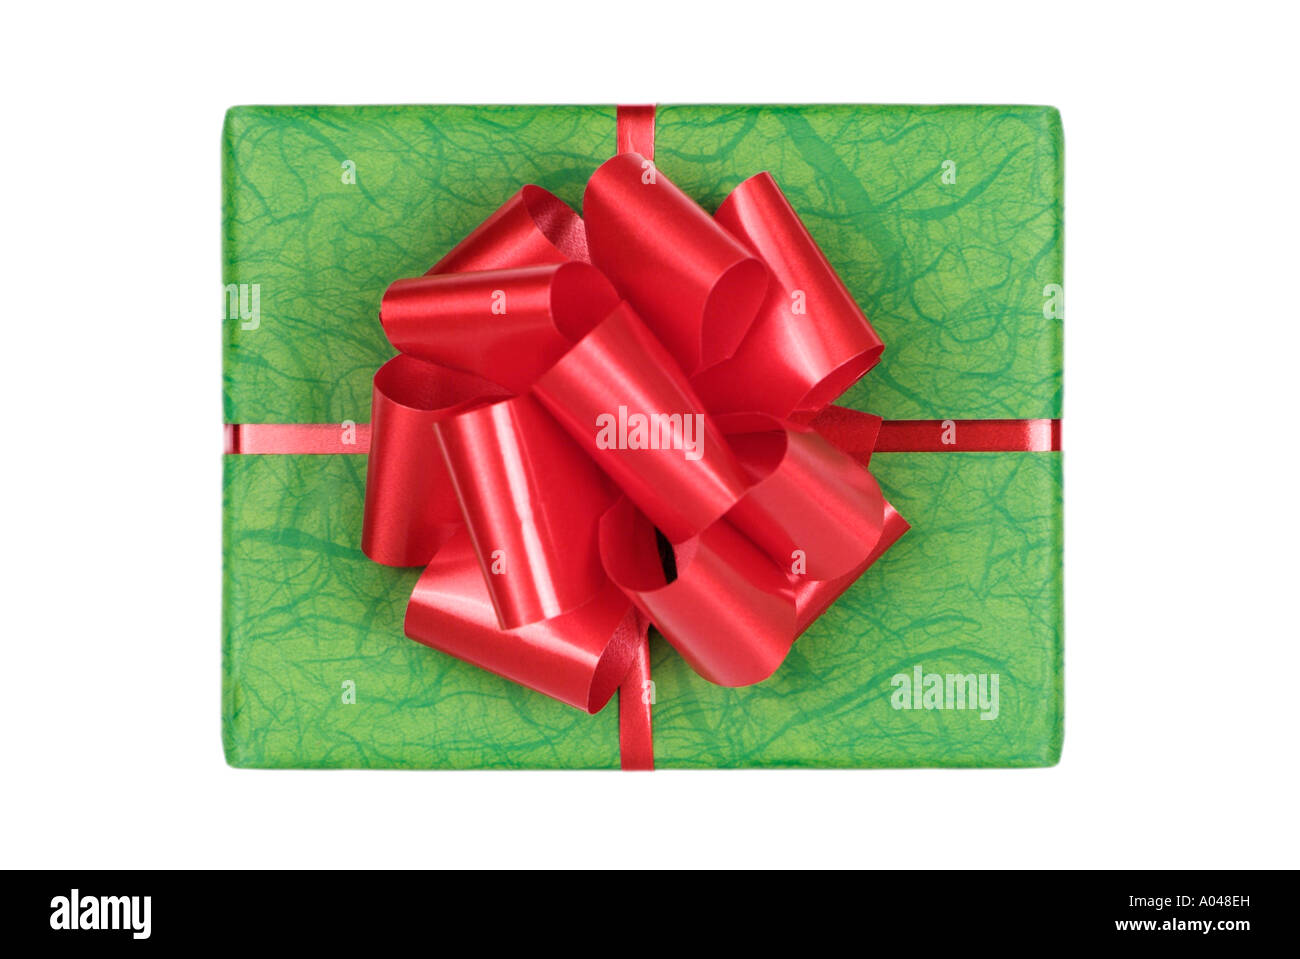 Gift Wrapped Present with Green Paper and a Red Ribbon - Stock Image